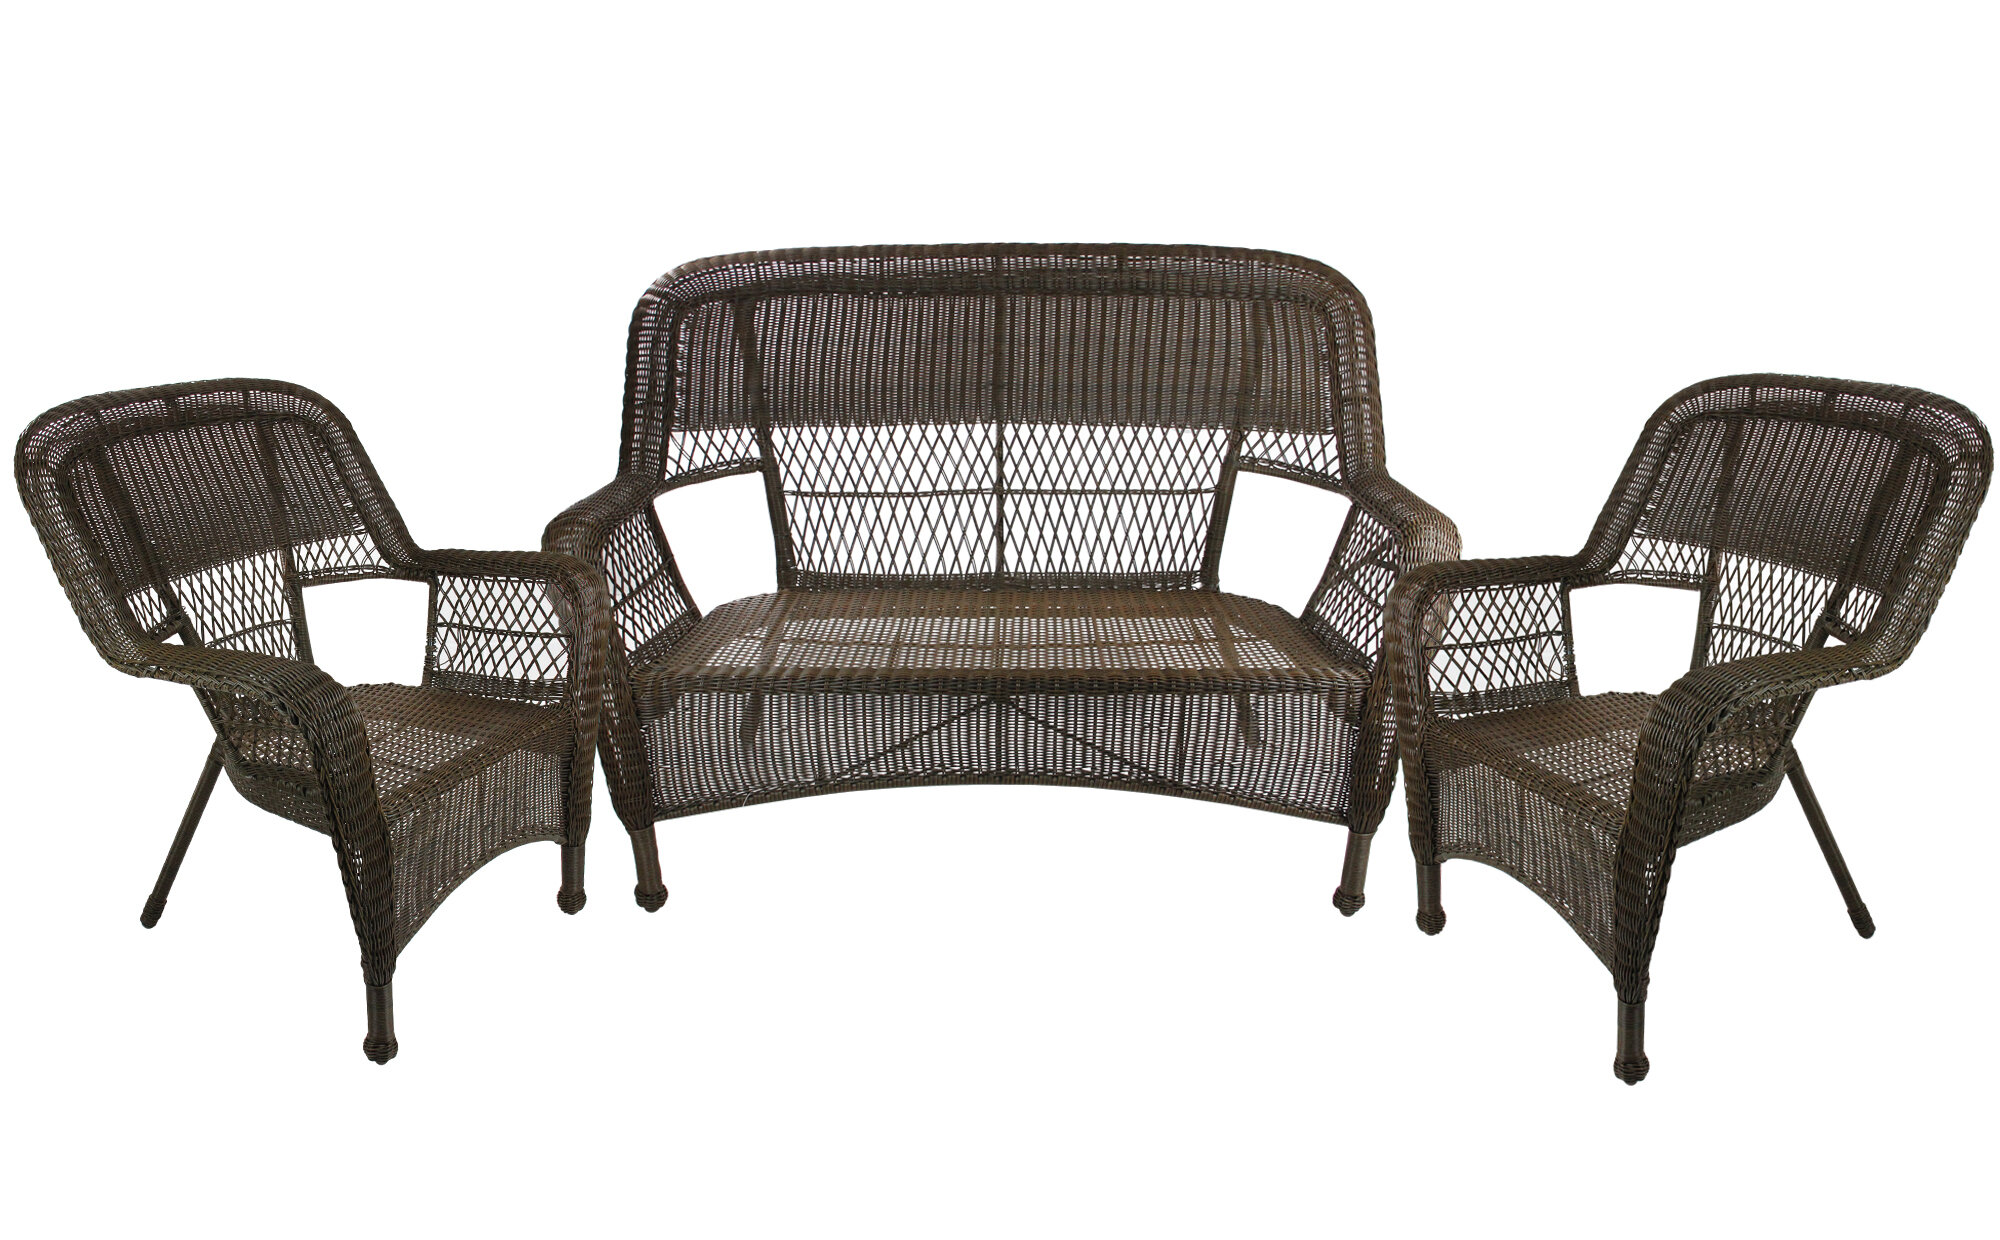 Darby Home Co Jacque Outdoor Patio Furniture 3 Piece Sofa Seating